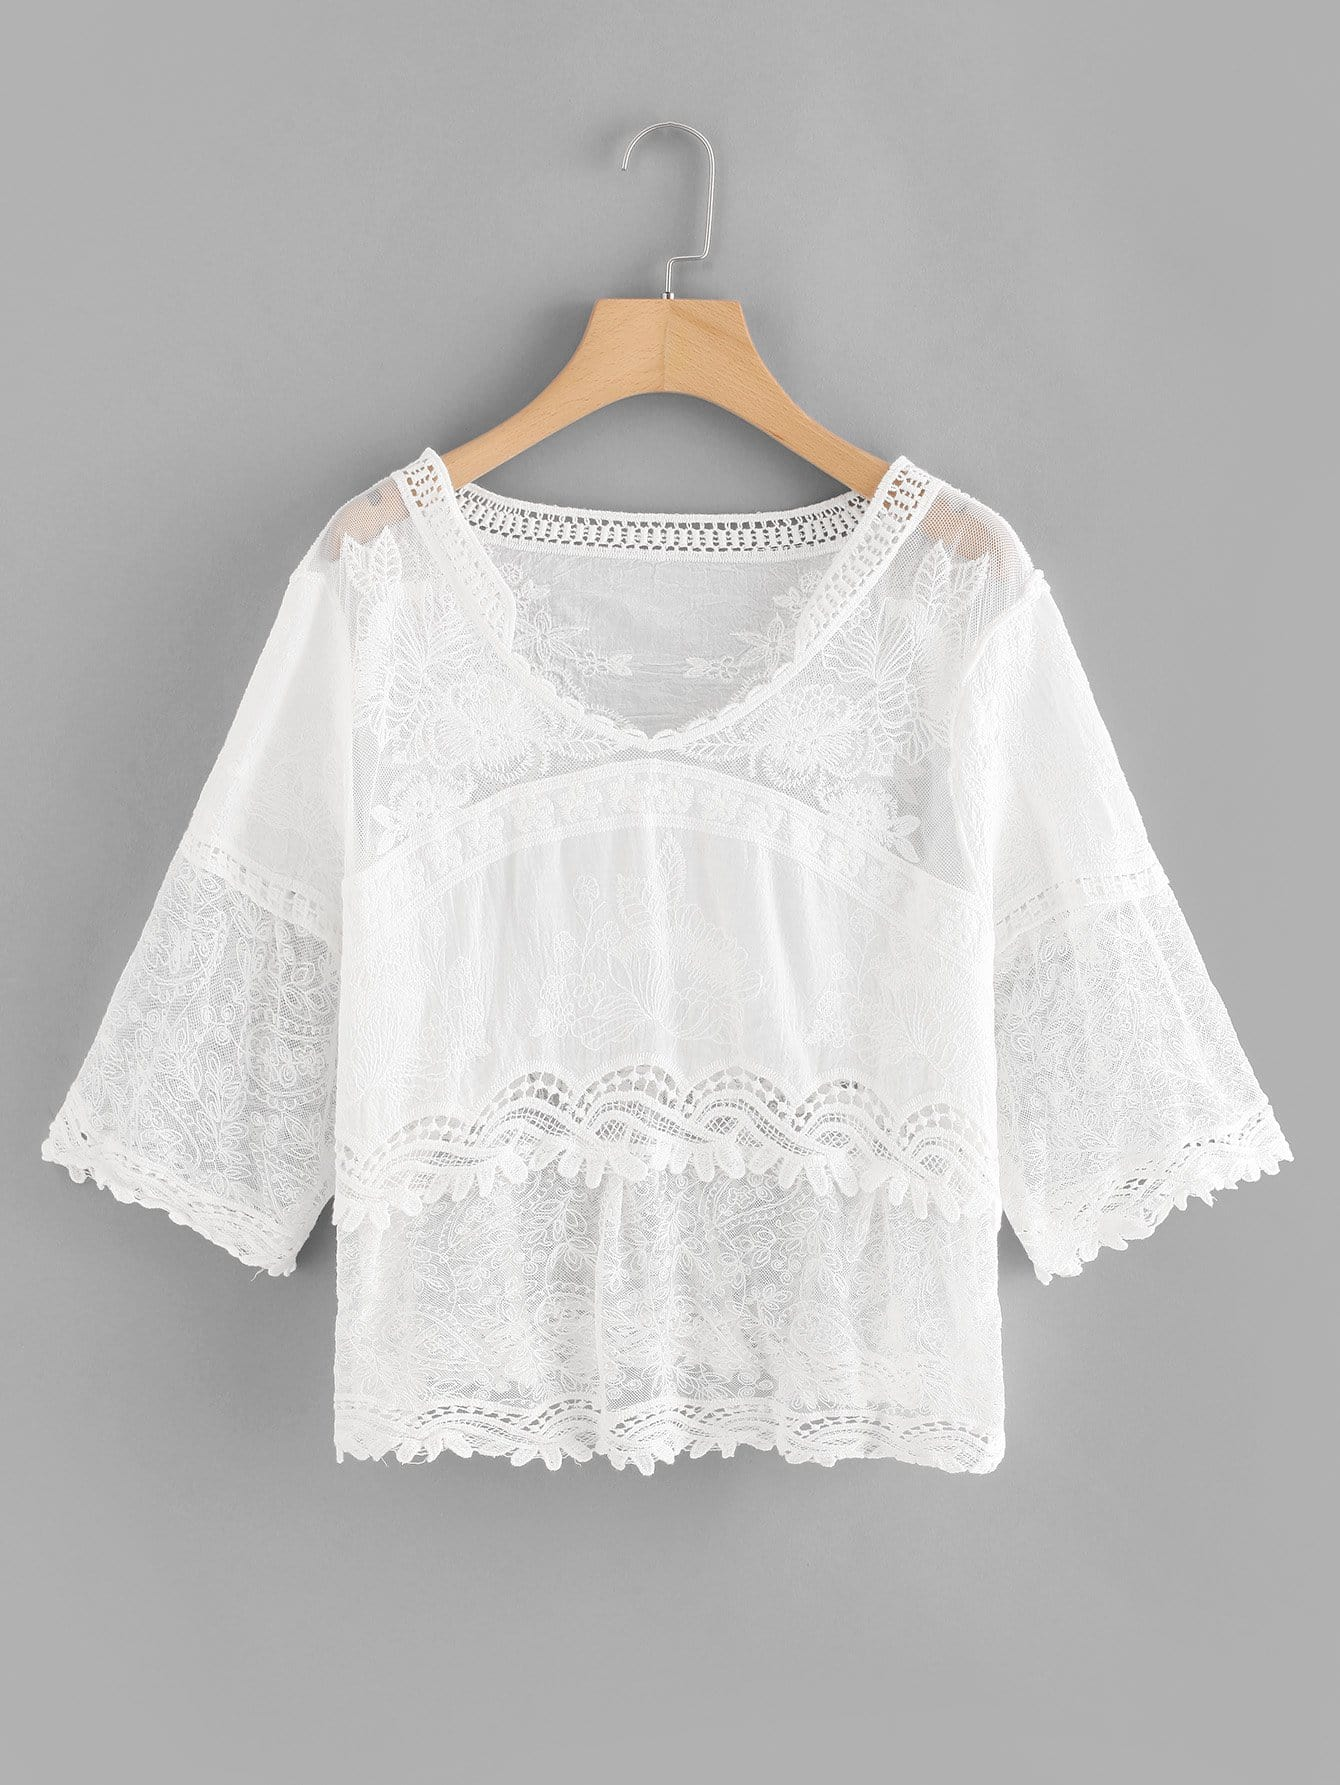 Lace Cut Out Sheer Cover Up sleeveless scalloped sheer lace tunic cover up top